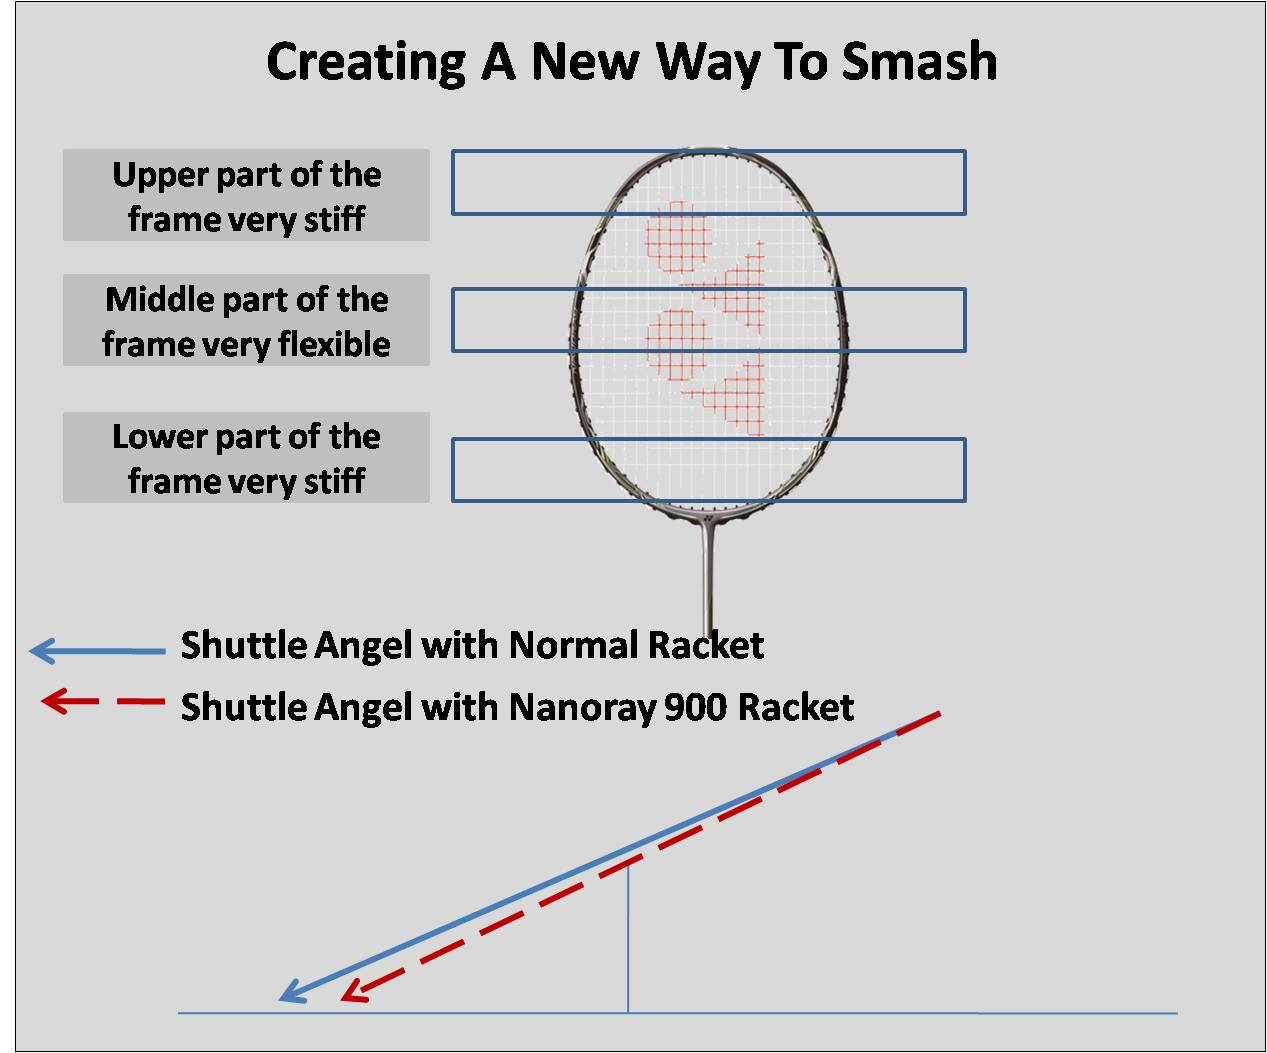 About Creating a new way to smash Nanoray 900 technology